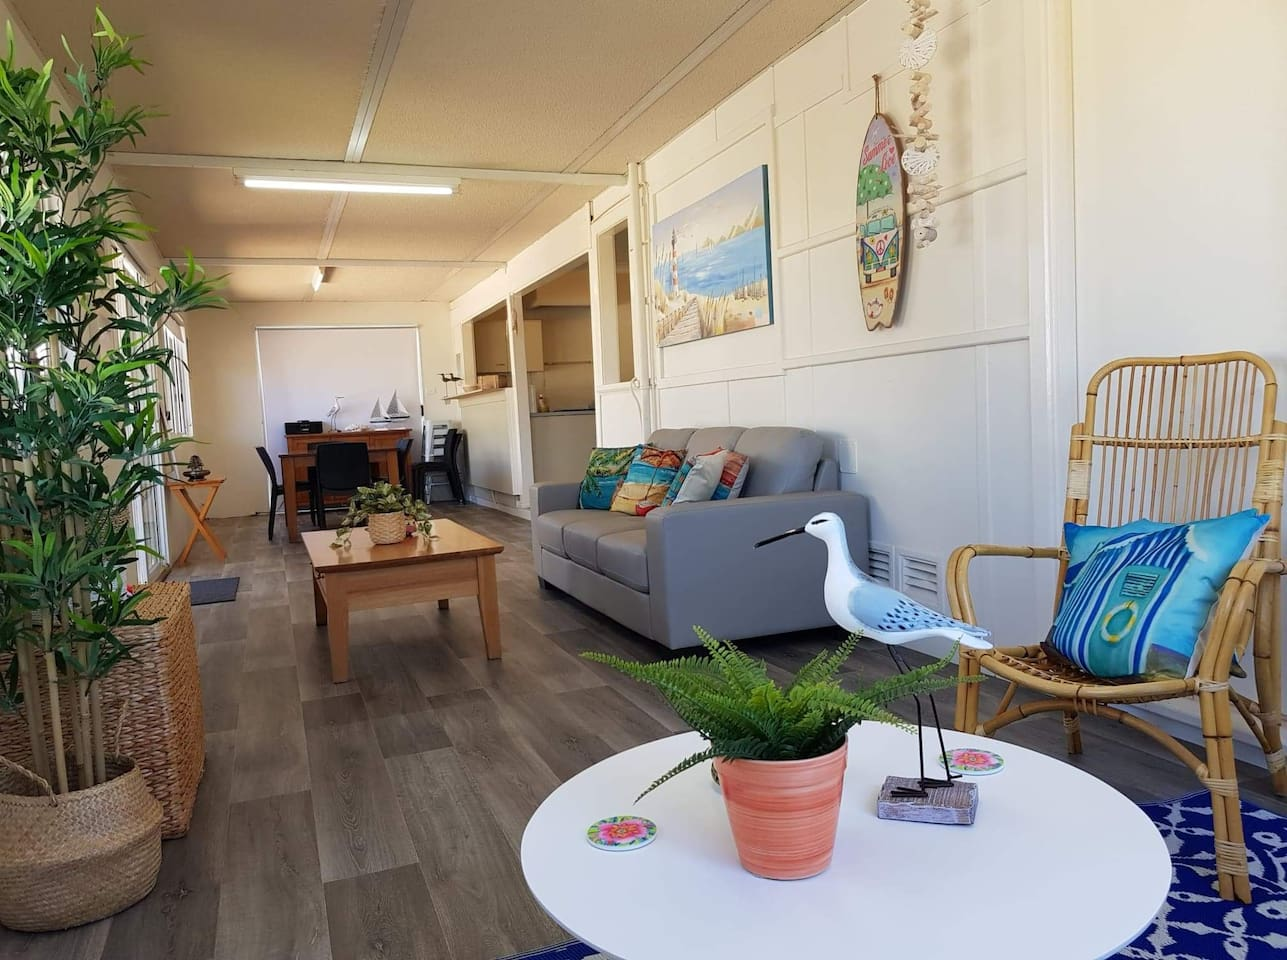 Beautiful beach house only 200 metres from the ocean.  Hear the waves crashing at night. Ledge Point is a small  coastal town with a very laid back feel about it. Easy place to relax and unwind.